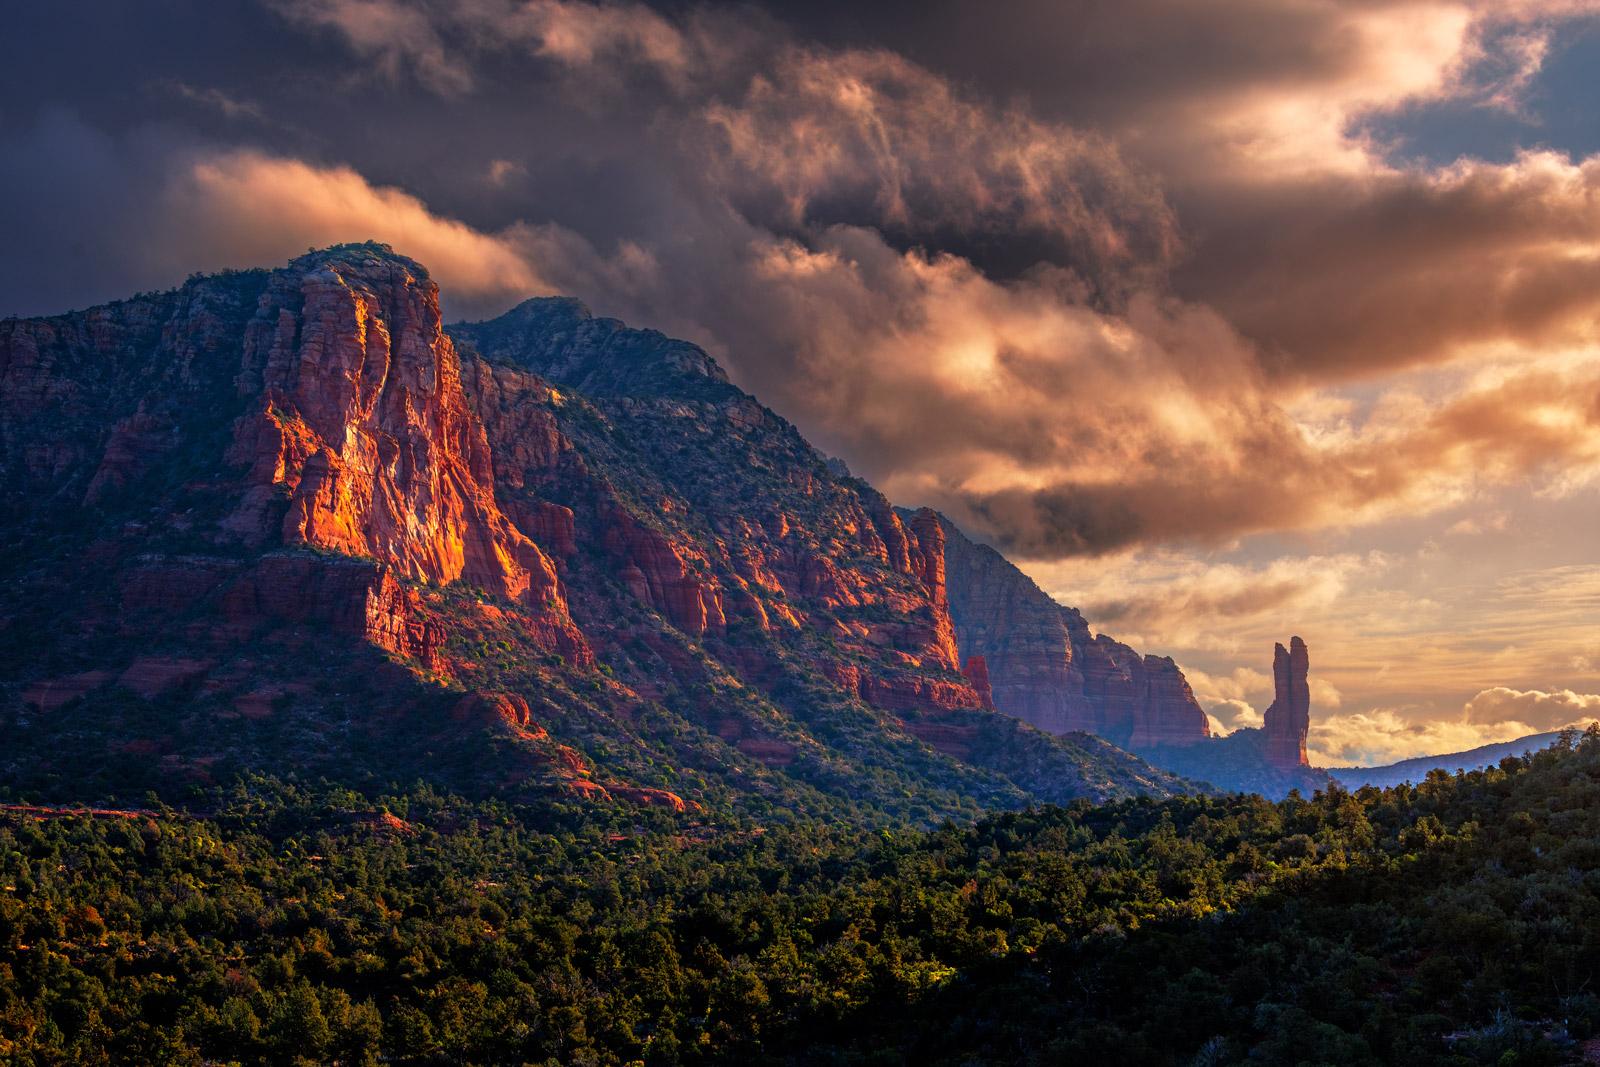 Arizona, Sedona, Courthouse Butte, Sunrise, Red Rock, Clouds, photo